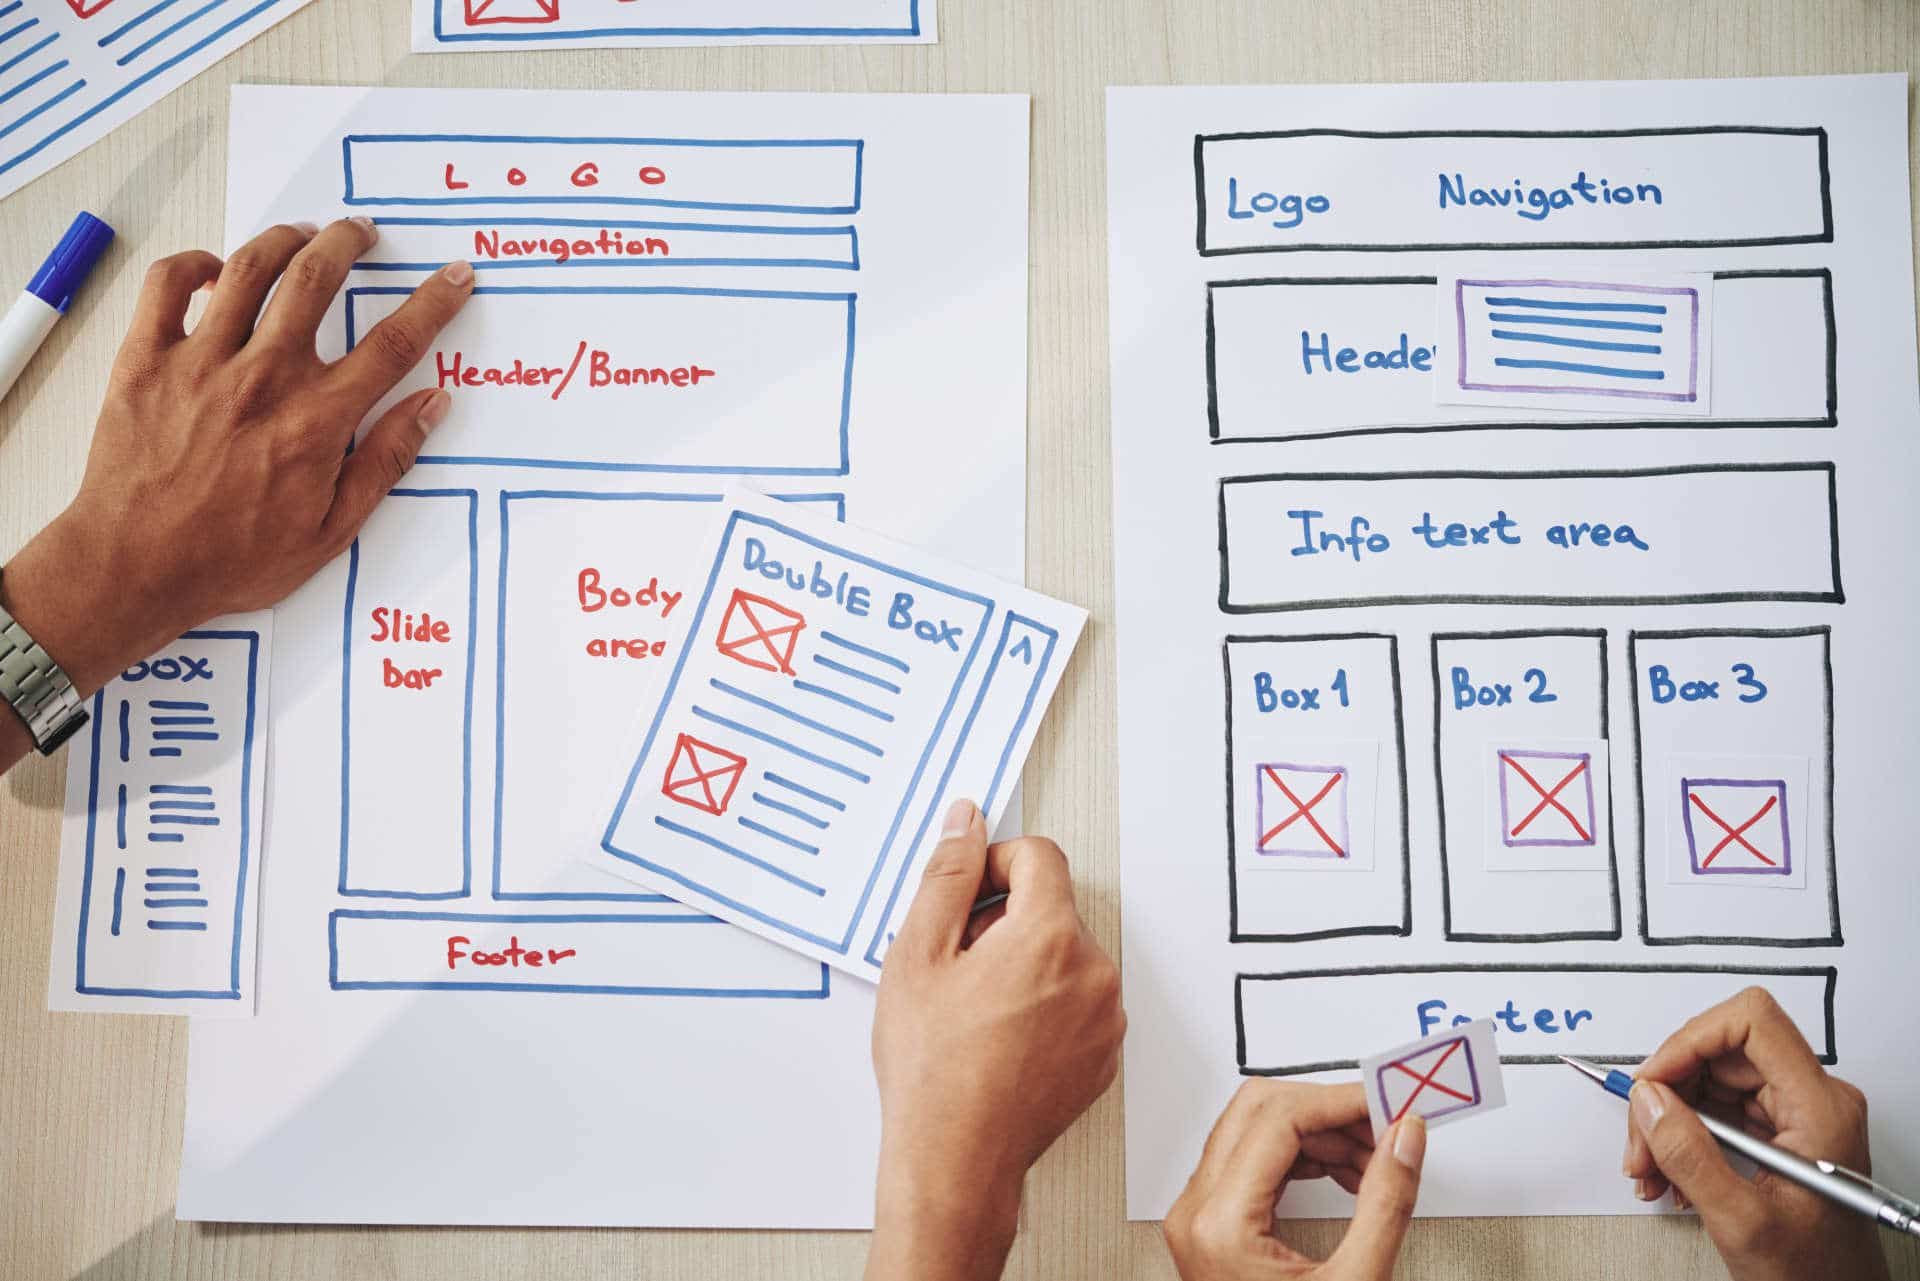 Website being designed on paper for Glasgow business